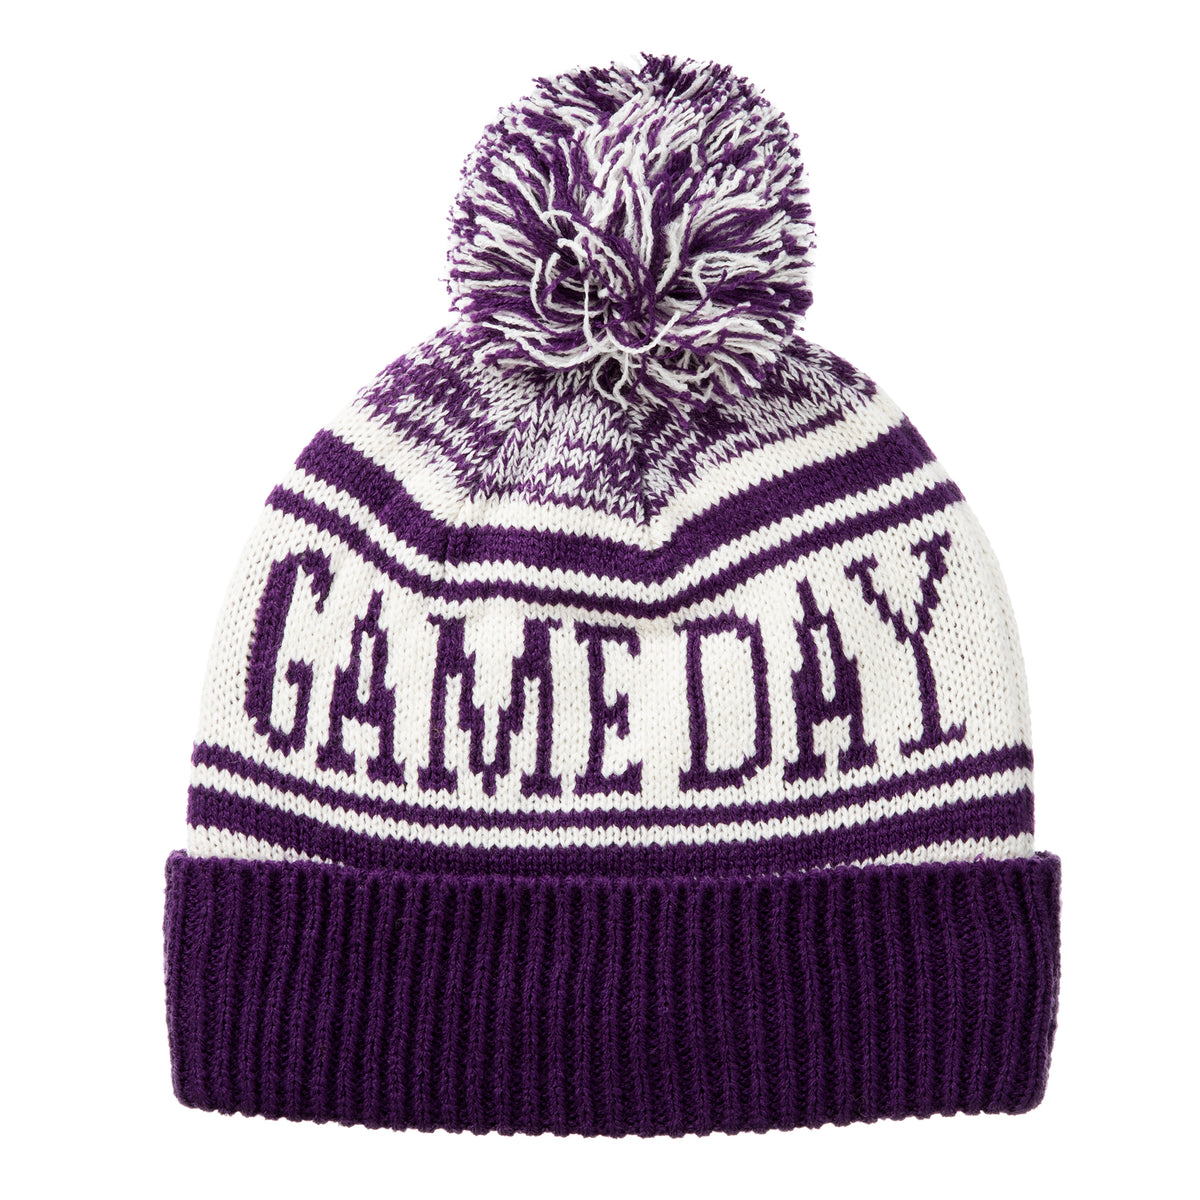 Women's Game Day Hat in Eggplant (Purple)